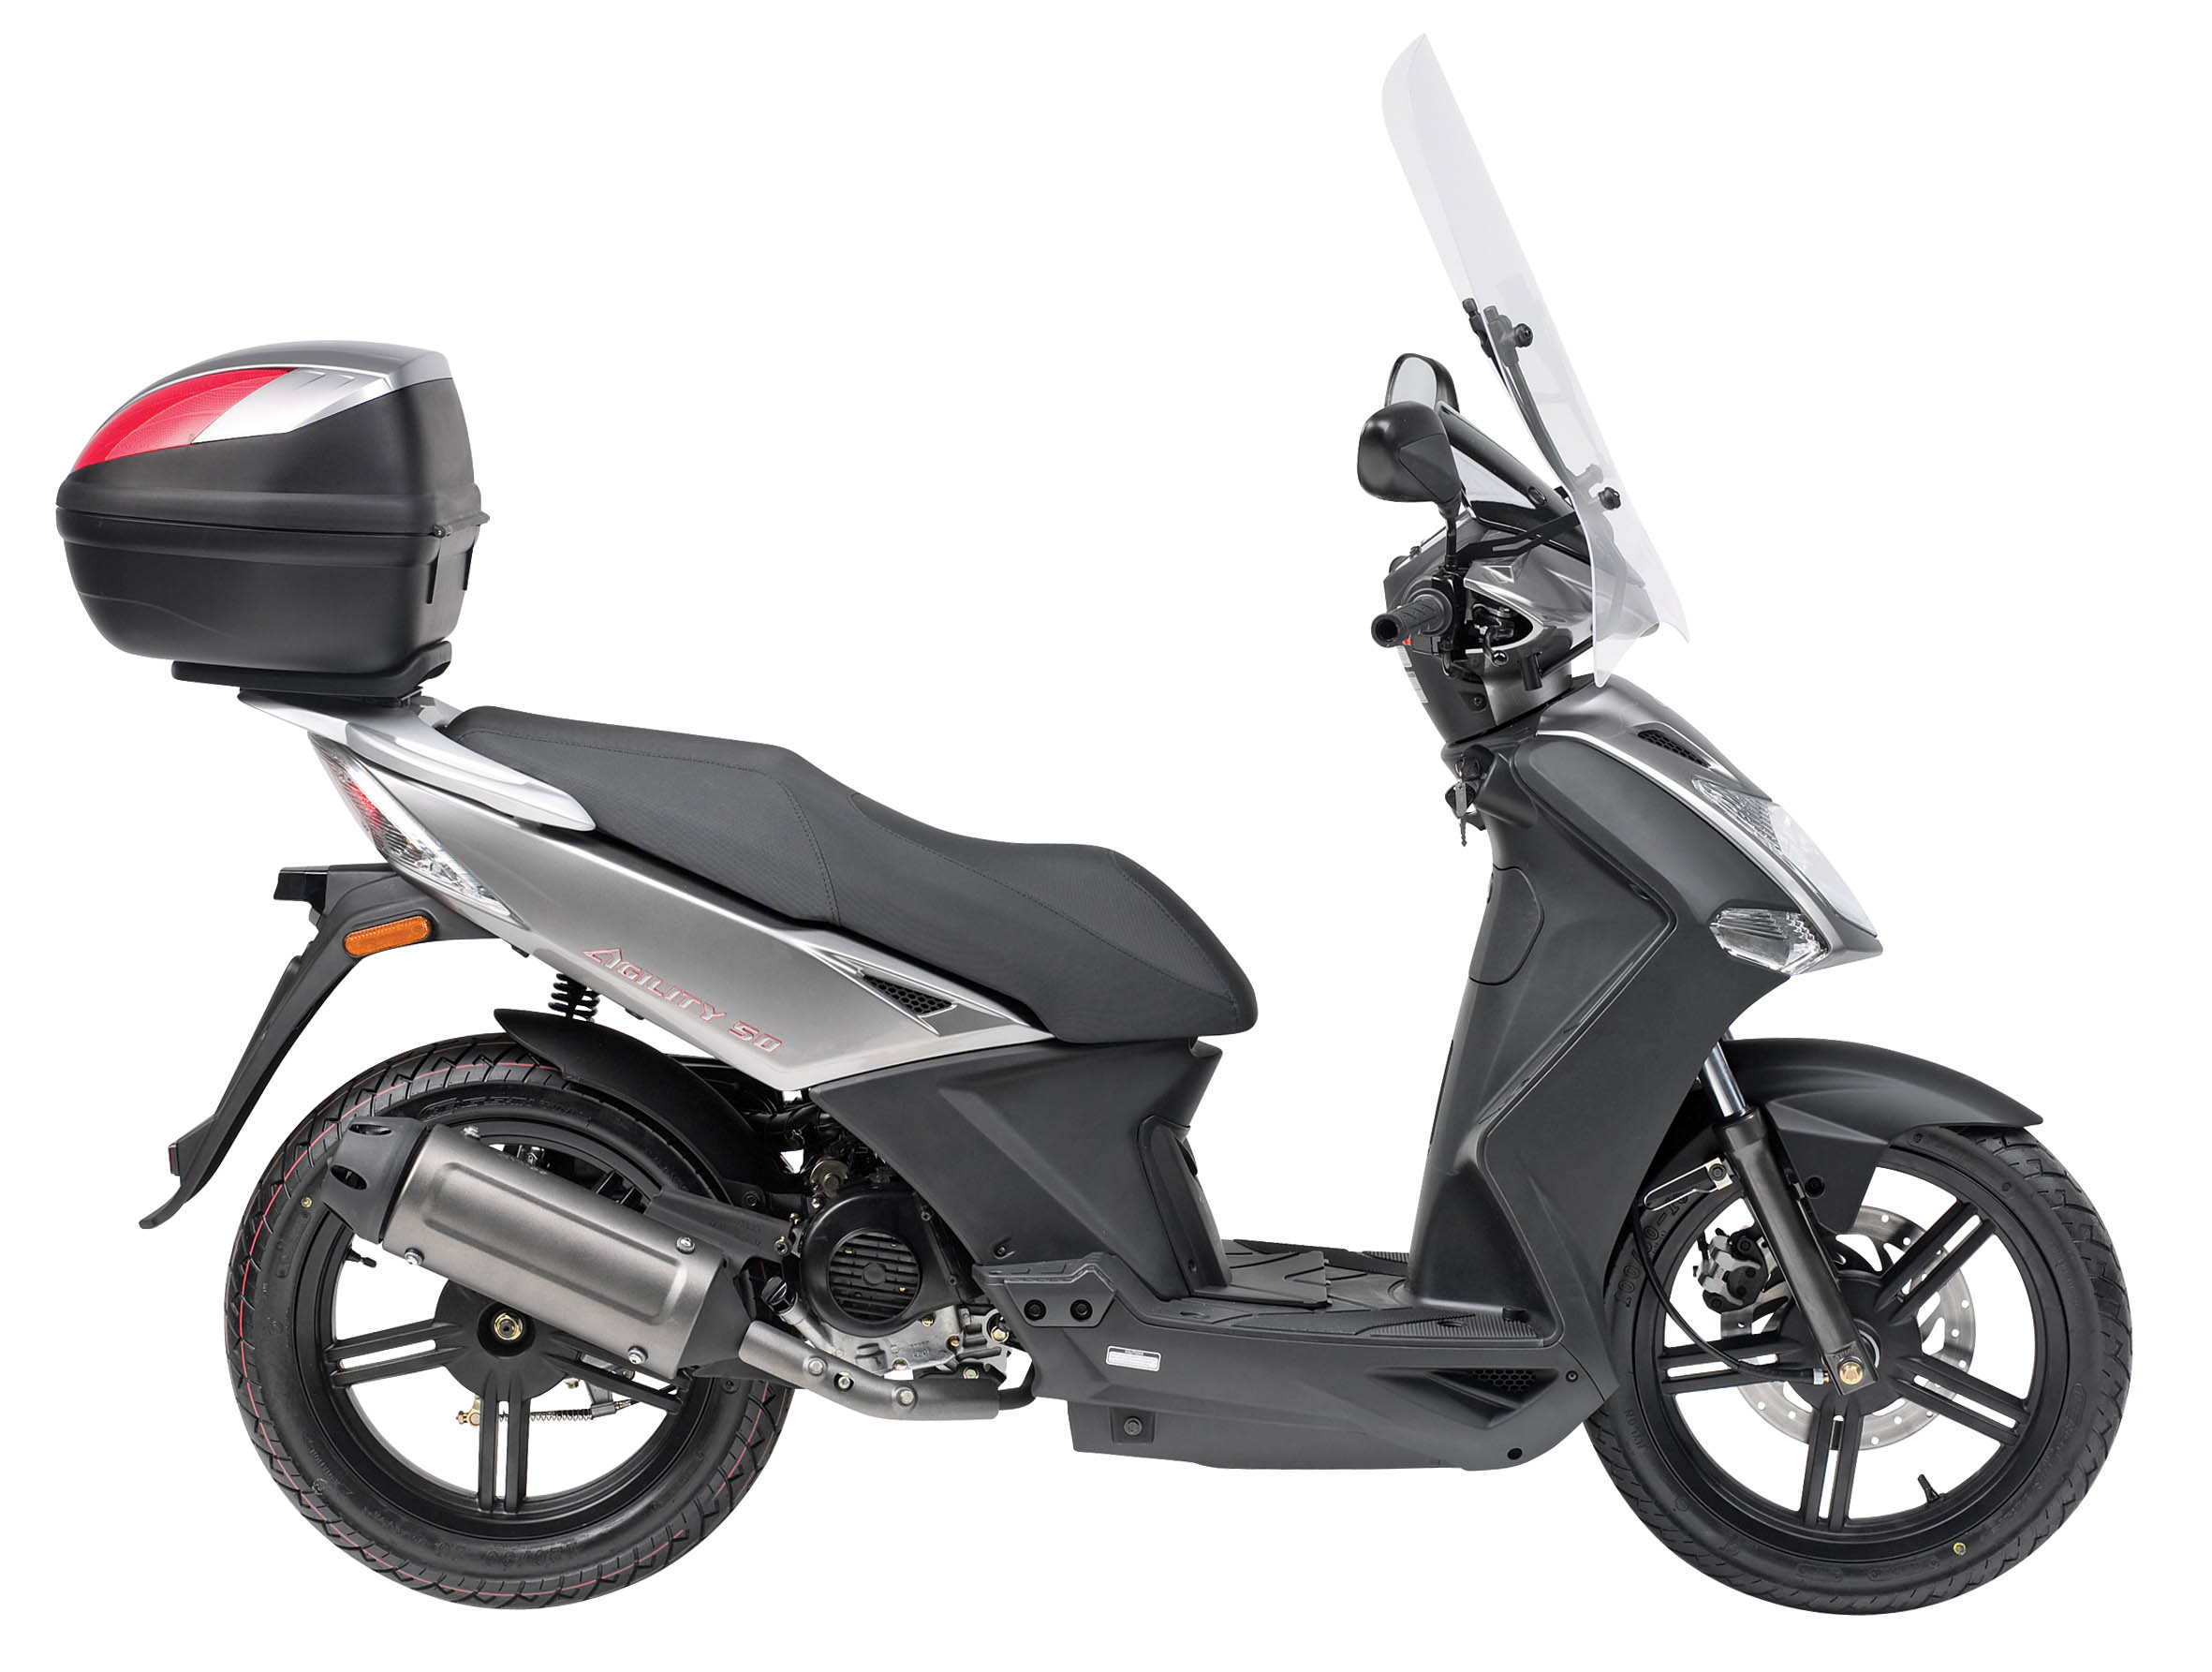 Kymco Agility City 125 2010 images #101821